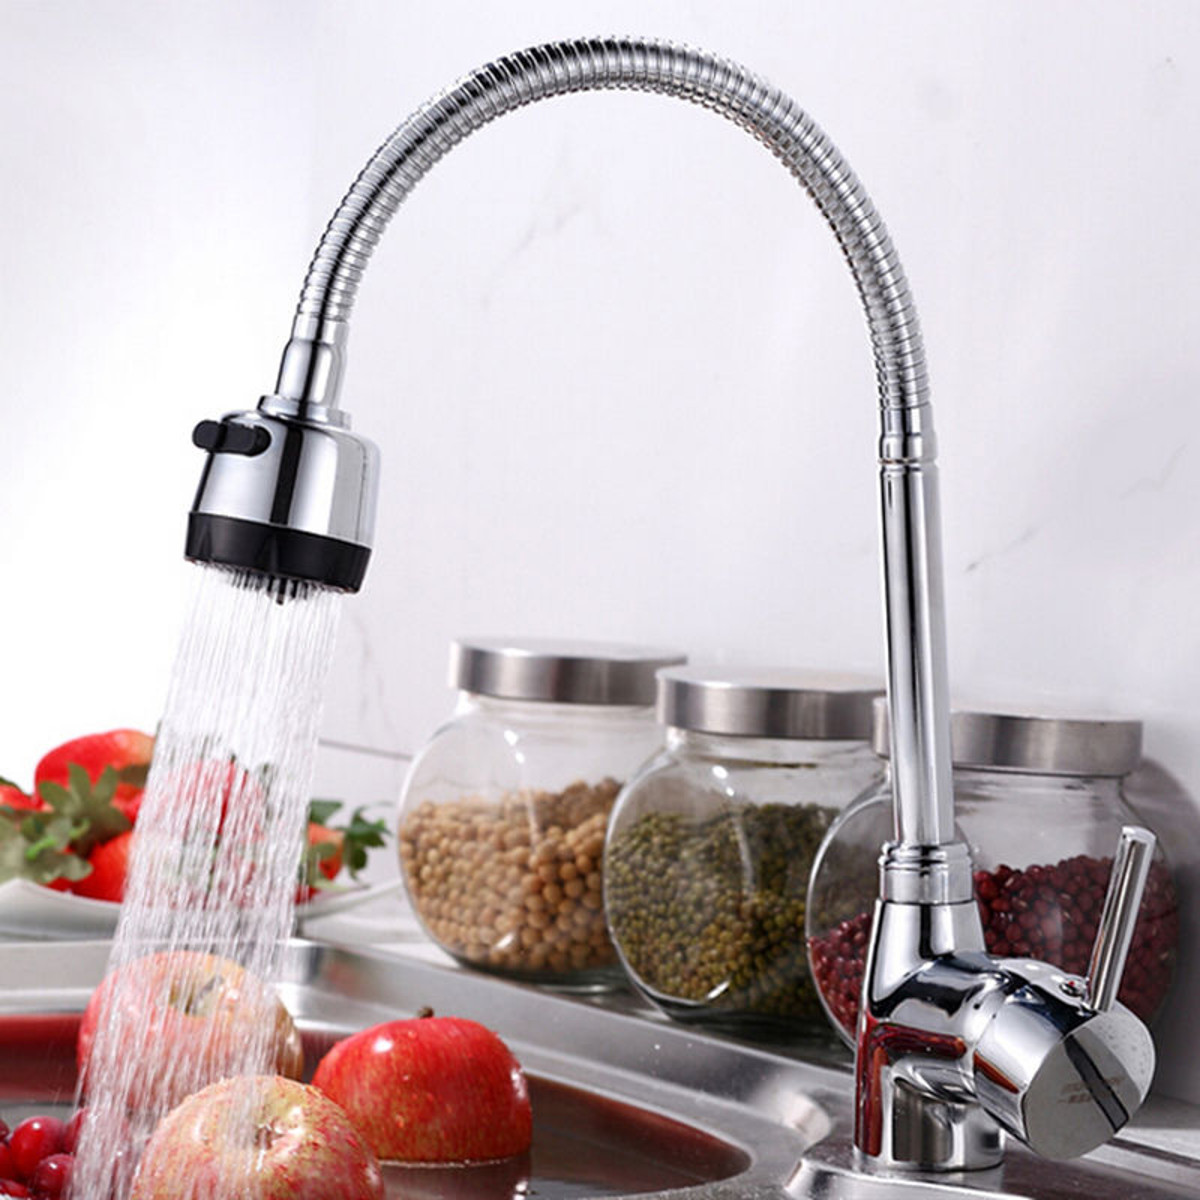 Kitchen Solid Brass 360Rotatable Pull Out Spray Basin Faucet Mixer Tap Spout Single Handle Sink Adjustable Spout Deck MountedKitchen Solid Brass 360Rotatable Pull Out Spray Basin Faucet Mixer Tap Spout Single Handle Sink Adjustable Spout Deck Mounted